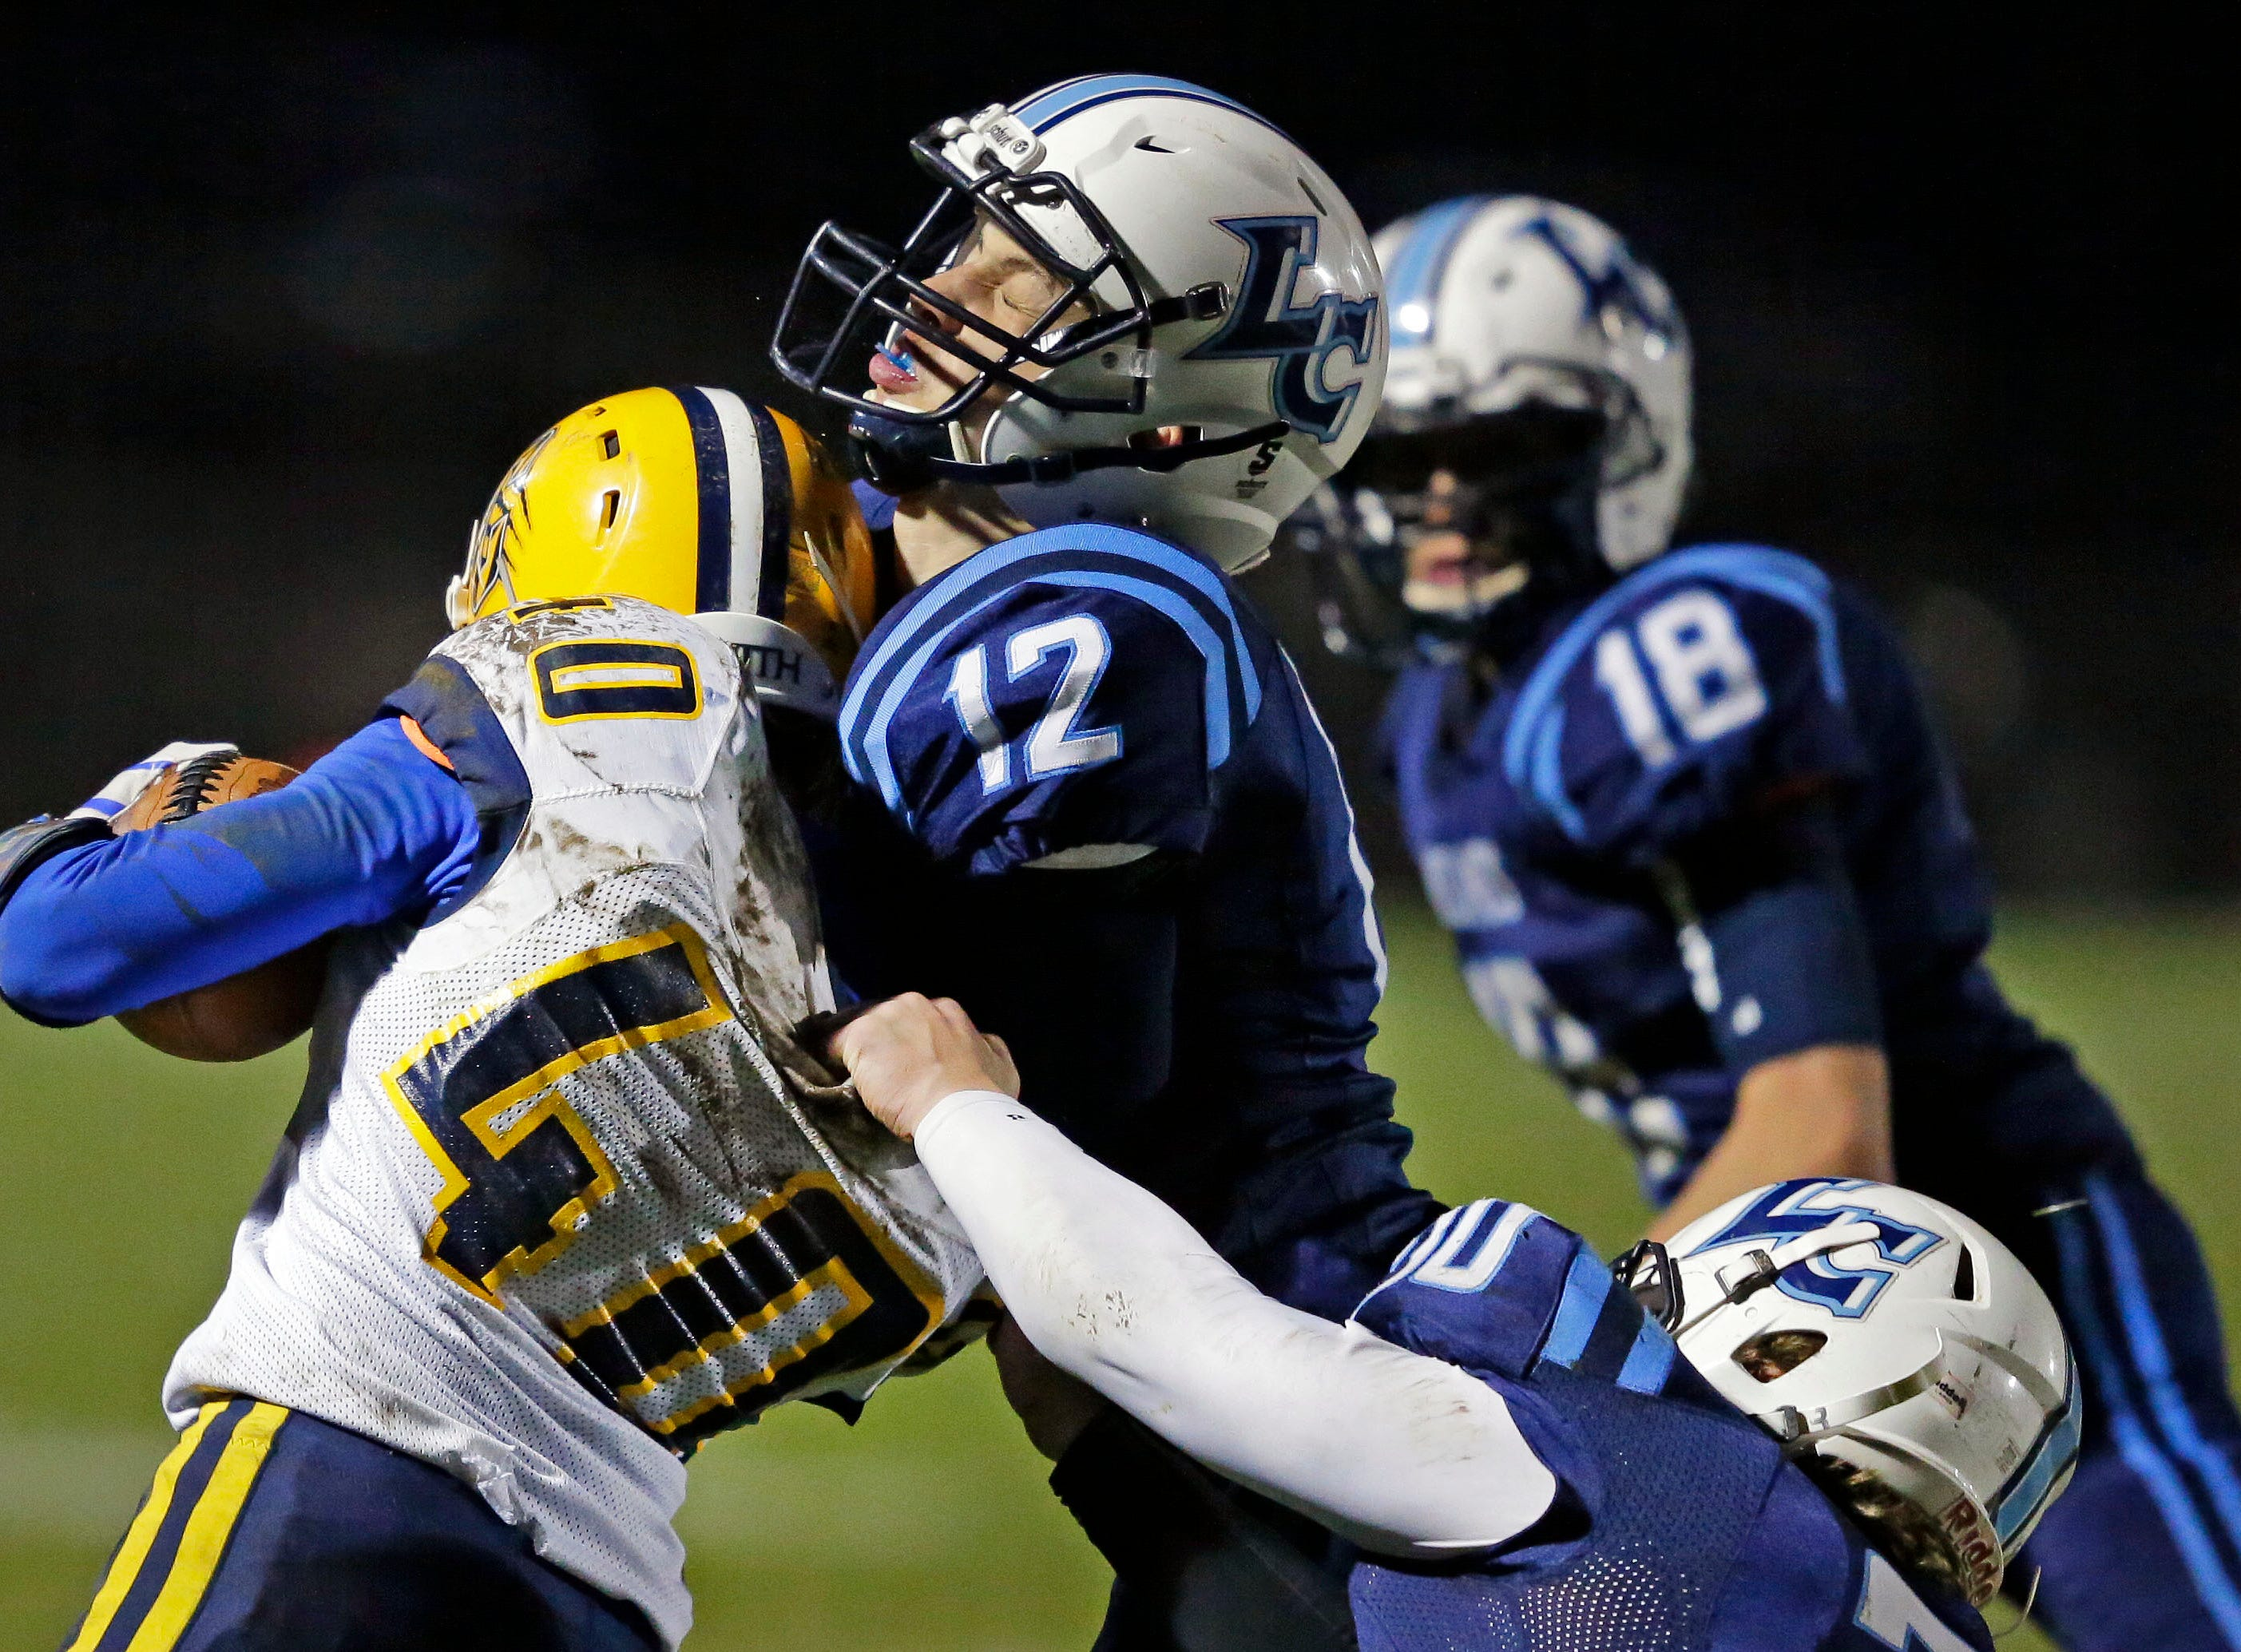 Cayden Popp of Chilton is tackled by Tate Huss (12) and Ryan Verstegen of Little Chute in a WIAA Division 4 second round football playoff game Friday, October 26, 2018, at Little Chute High School in Little Chute, Wis.Ron Page/USA TODAY NETWORK-Wisconsin